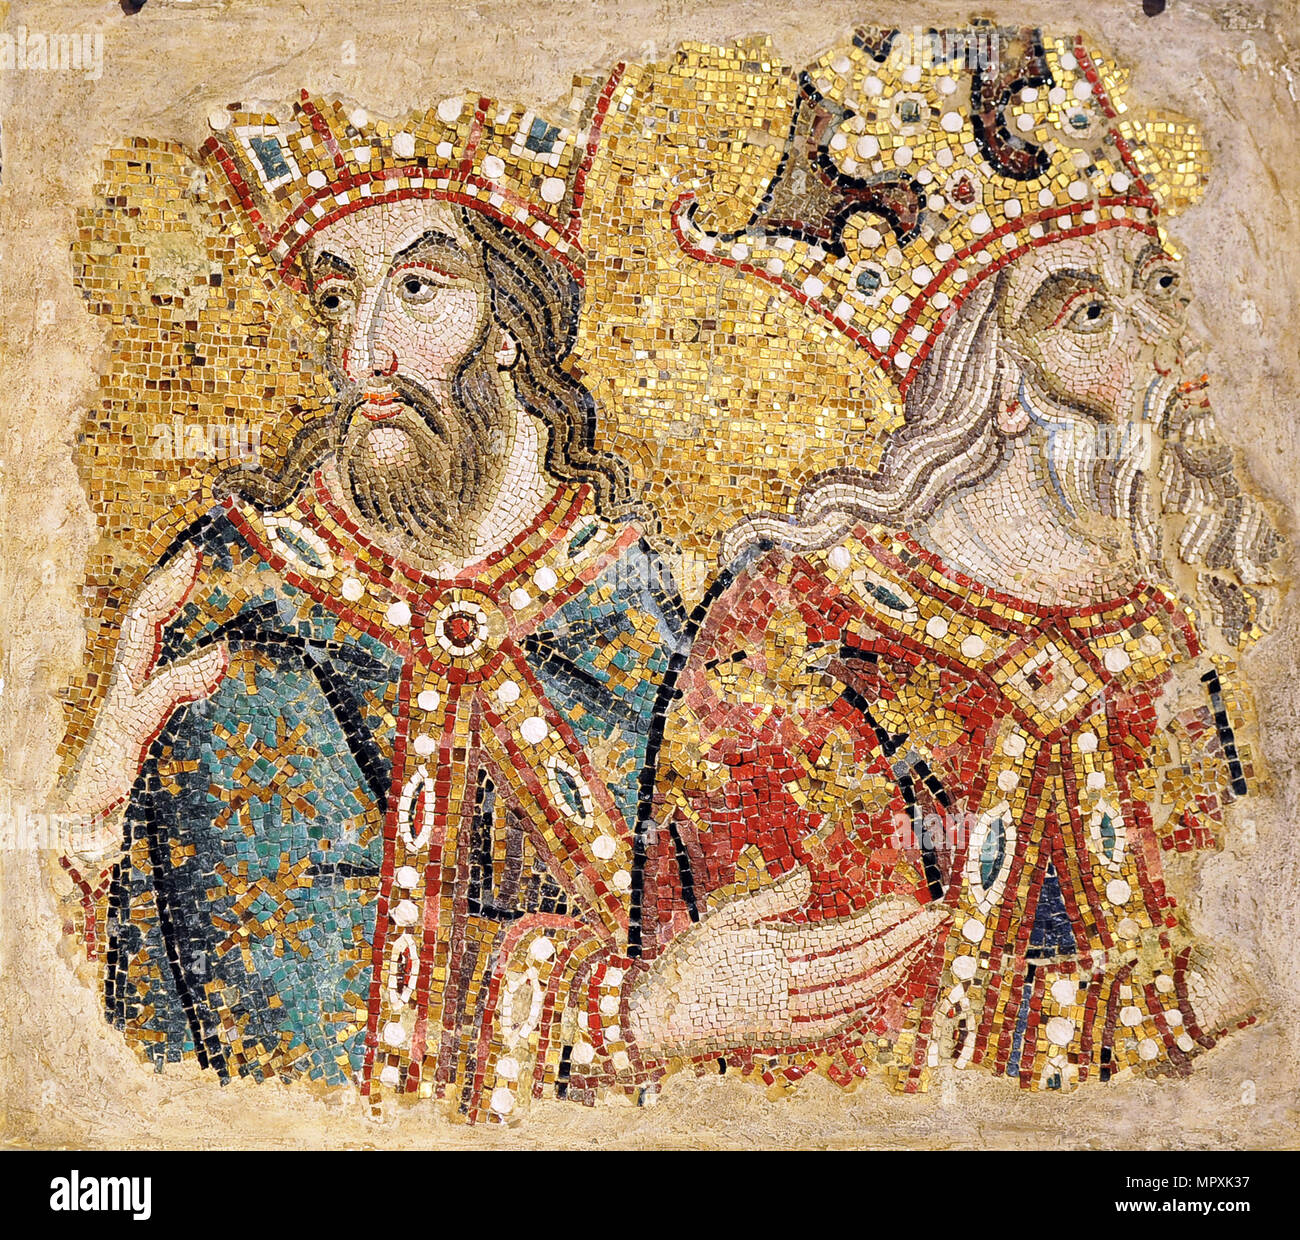 The Three Magi. Mosaic fragments from the Basilica San Marco, Venice , 14th century. - Stock Image